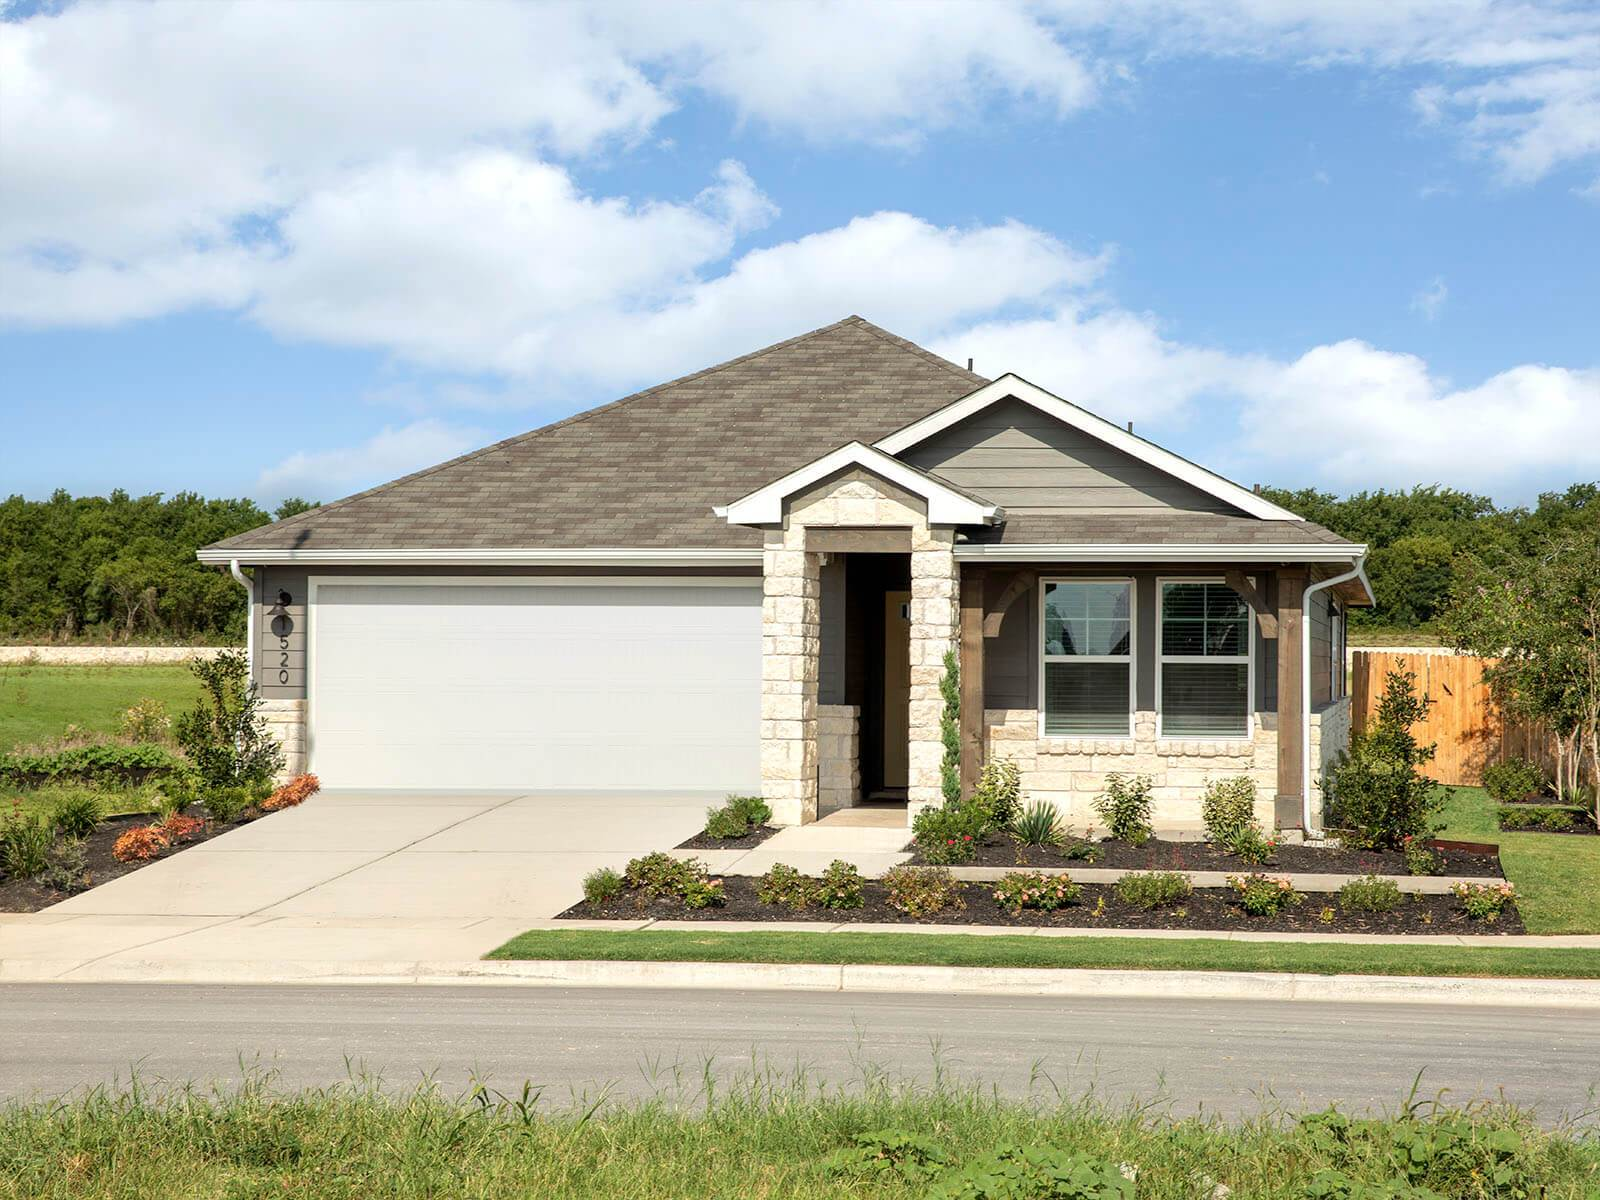 Homestead at Old Settlers Park offers functional floorplans with gorgeous exteriors.